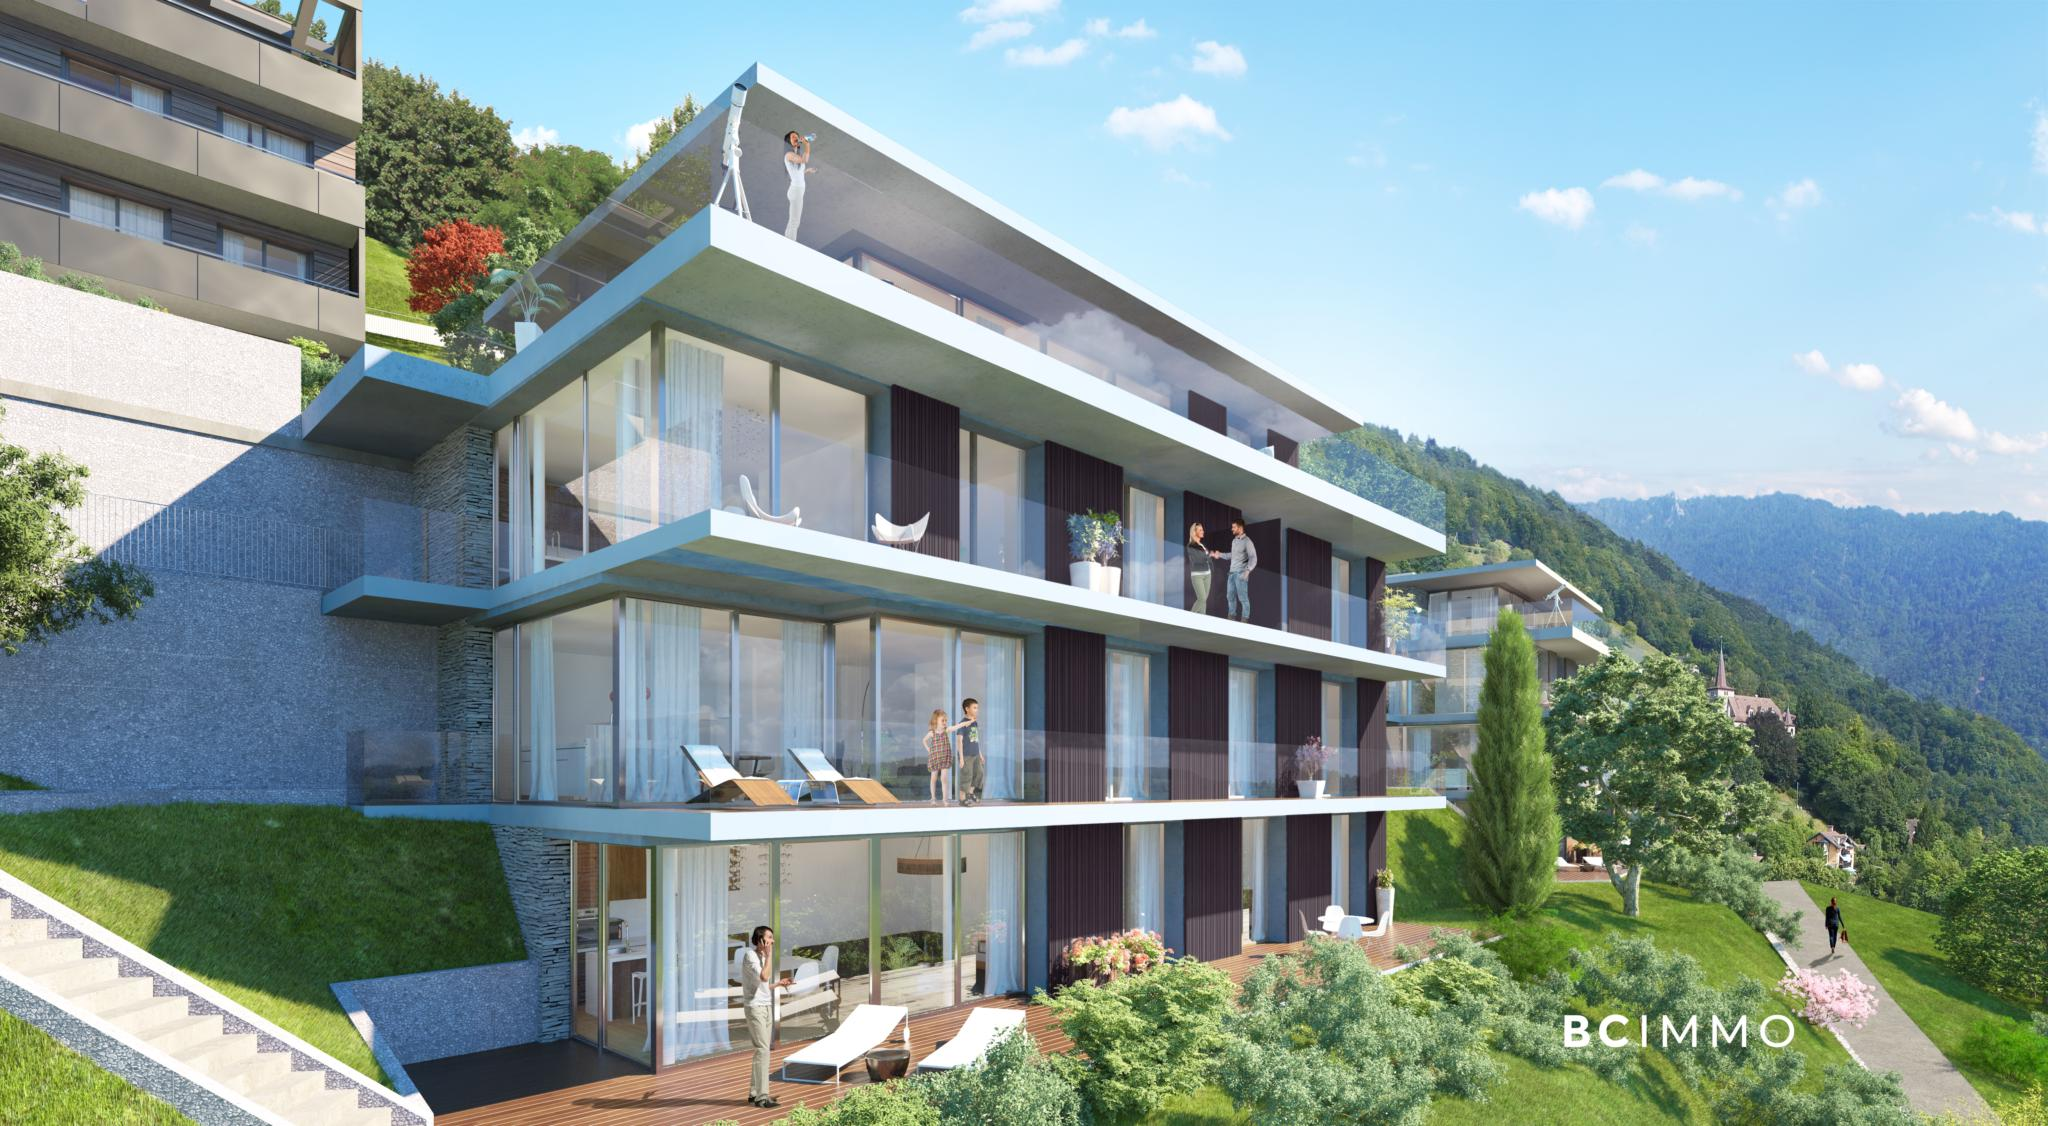 BC Immo - Appartement avec jardin - Glion  - 1823HBVB-A001